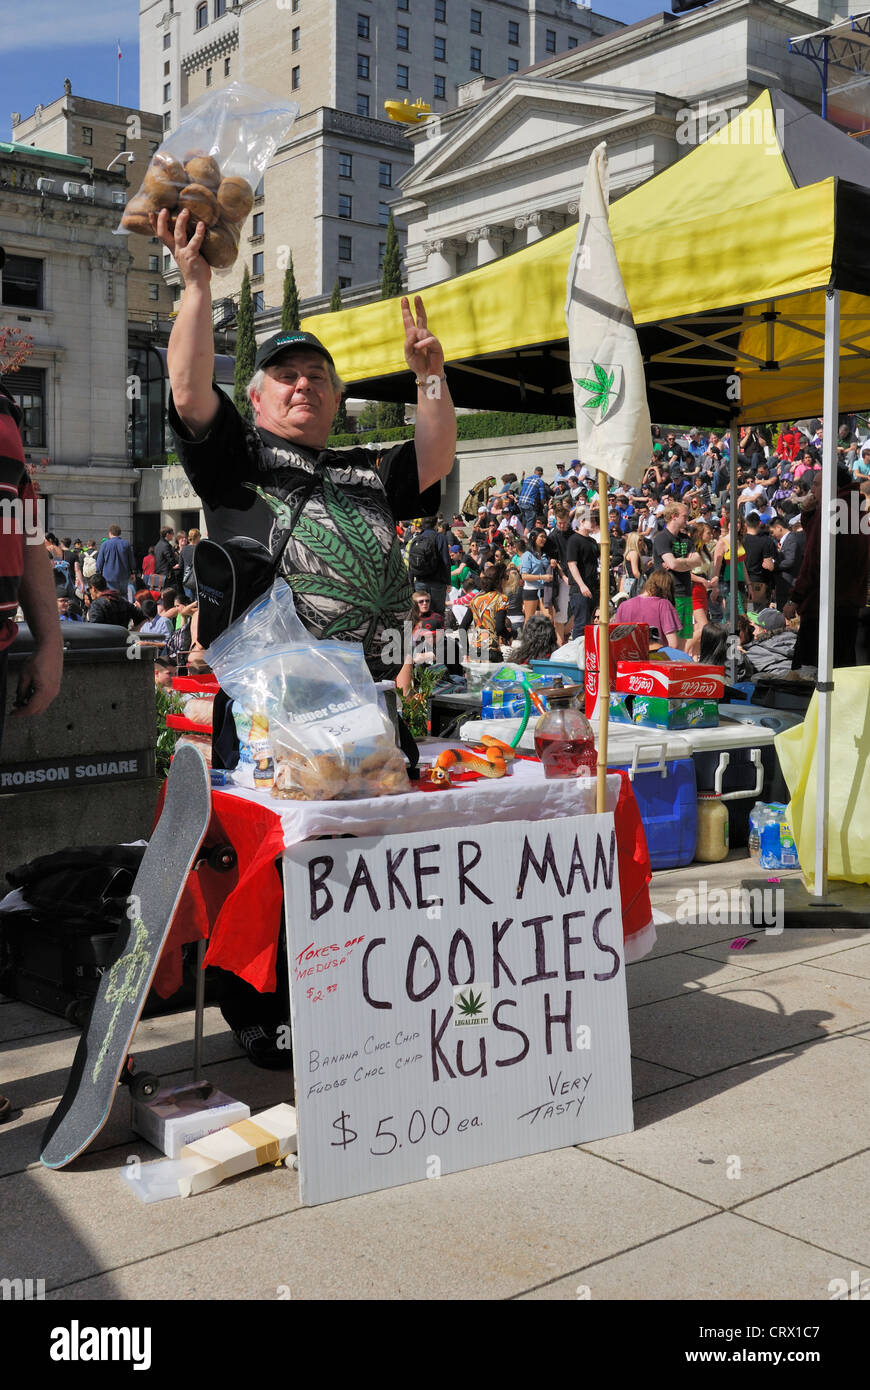 Vendor selling Kush cookies at the Vancouver Art Gallery during the annual 4 20. - Stock Image